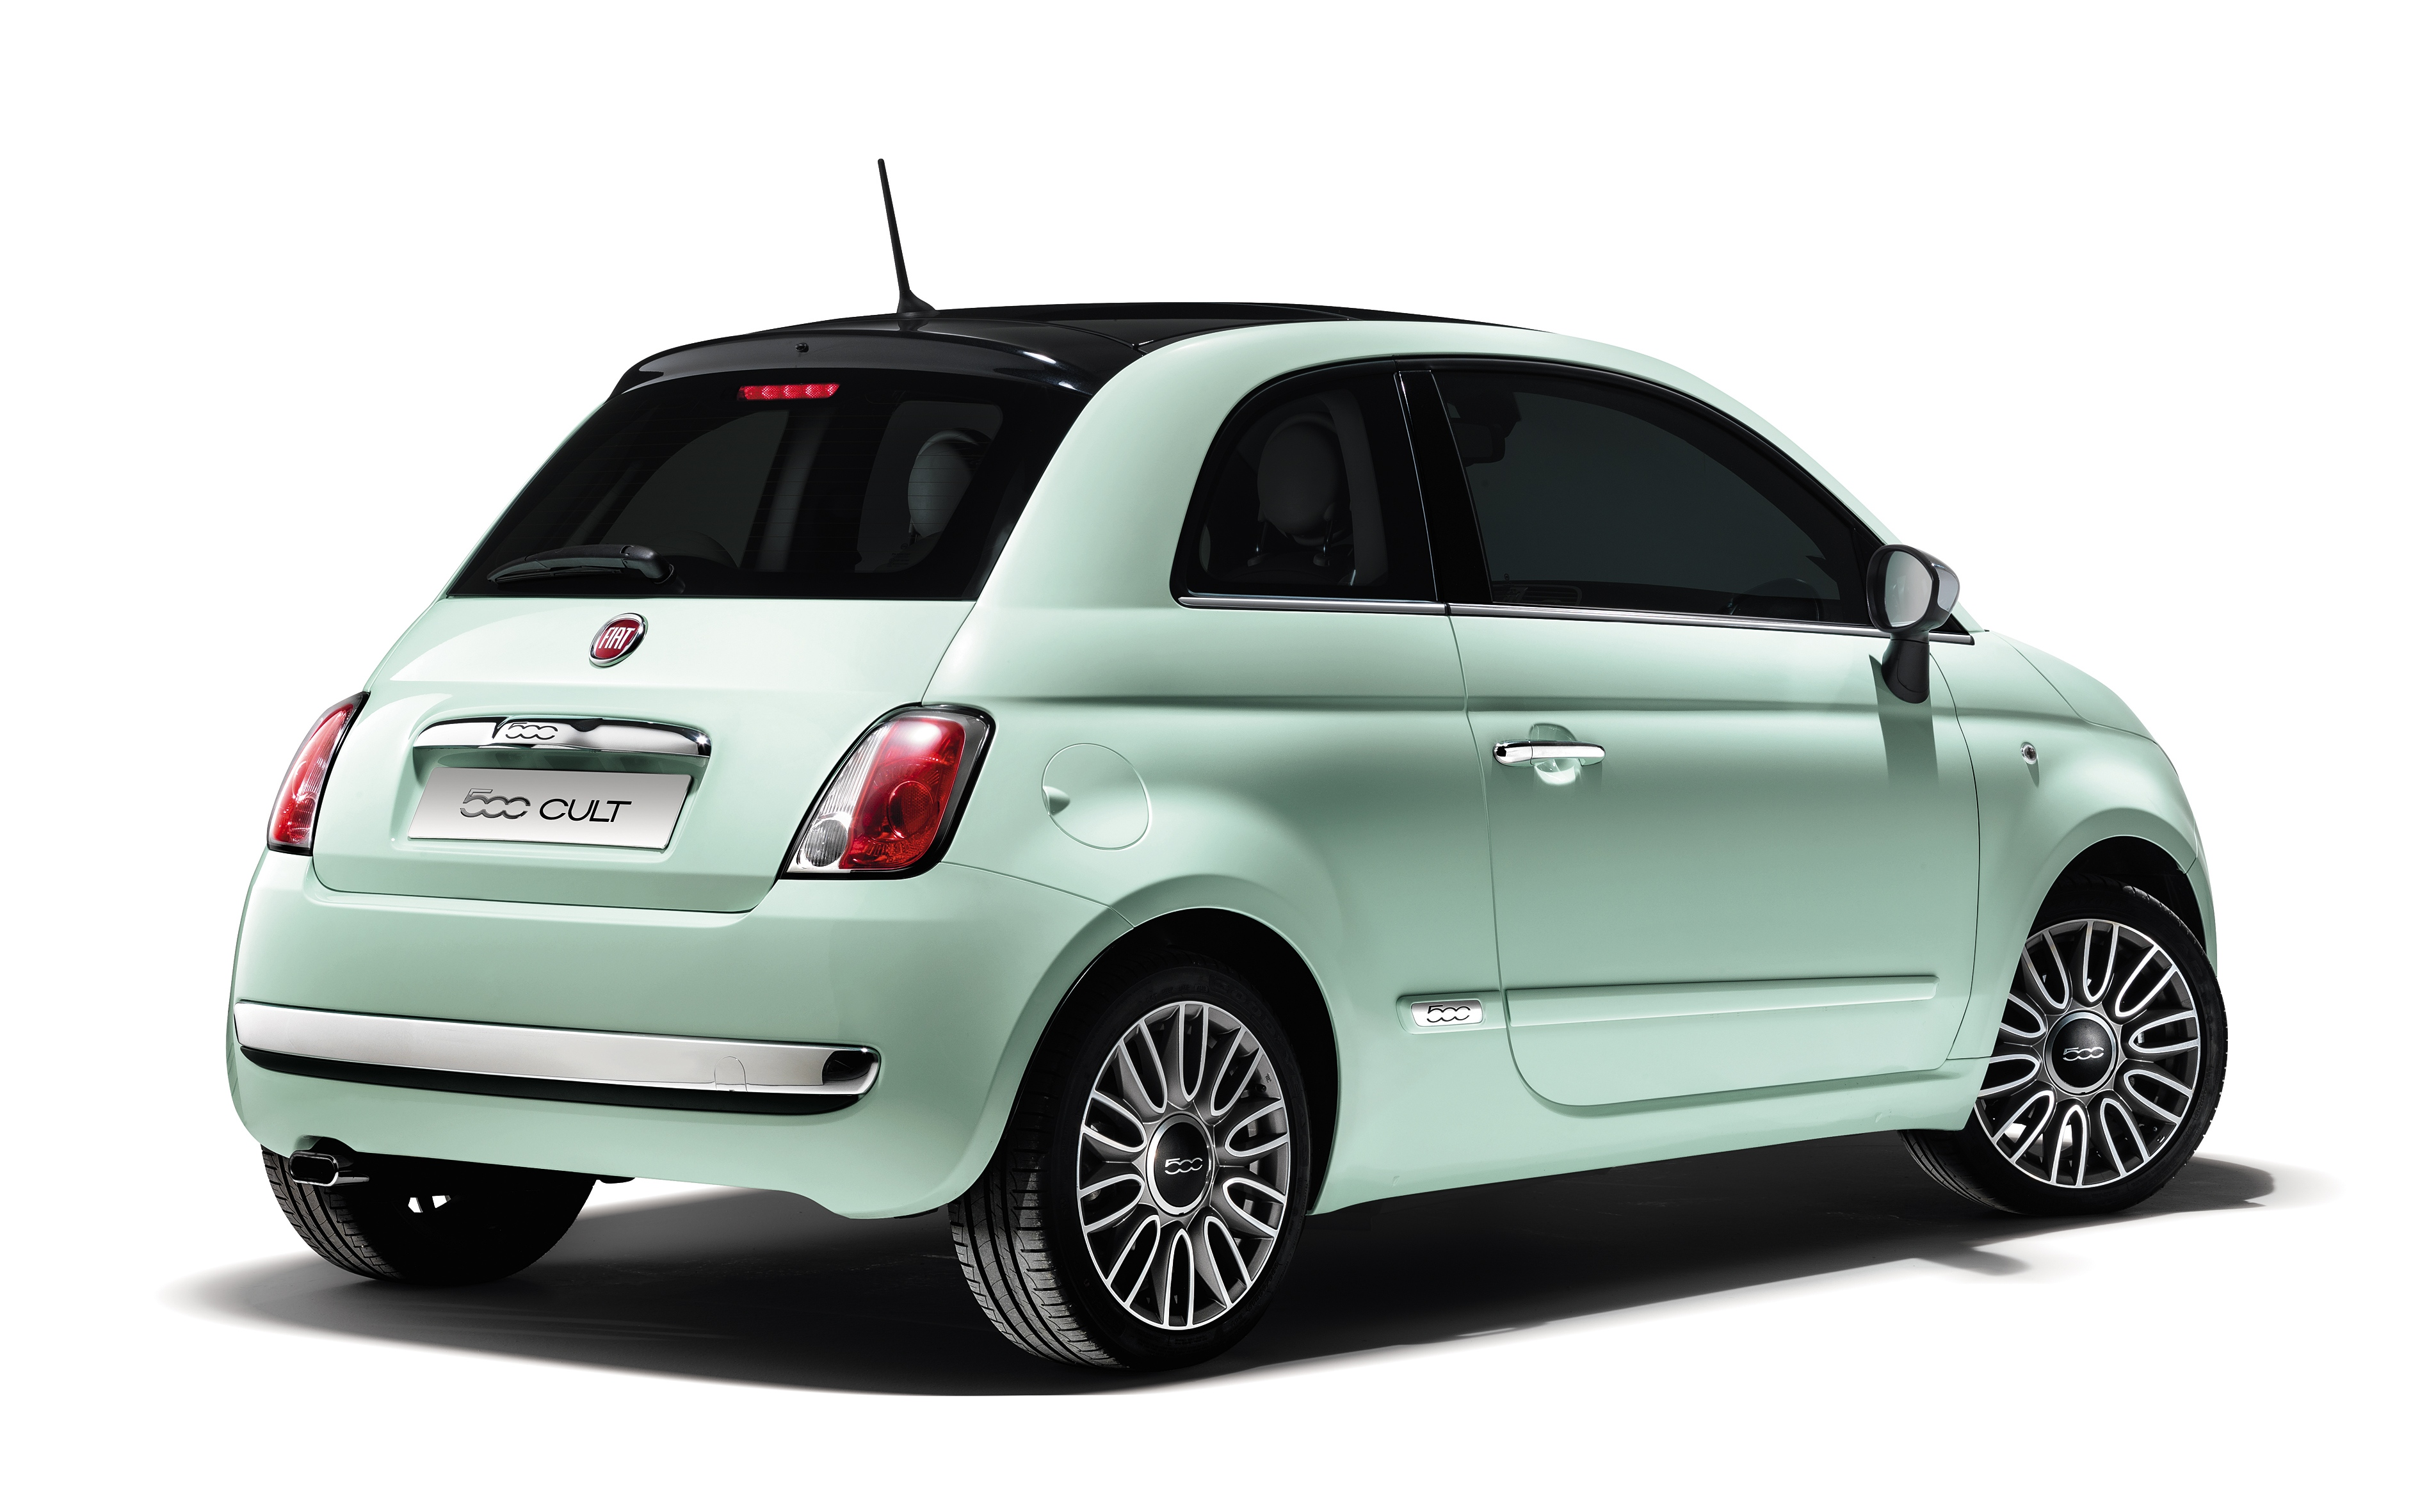 the 2014 fiat 500 range including new cult and twinair 105hp versions to debut at geneva motor. Black Bedroom Furniture Sets. Home Design Ideas